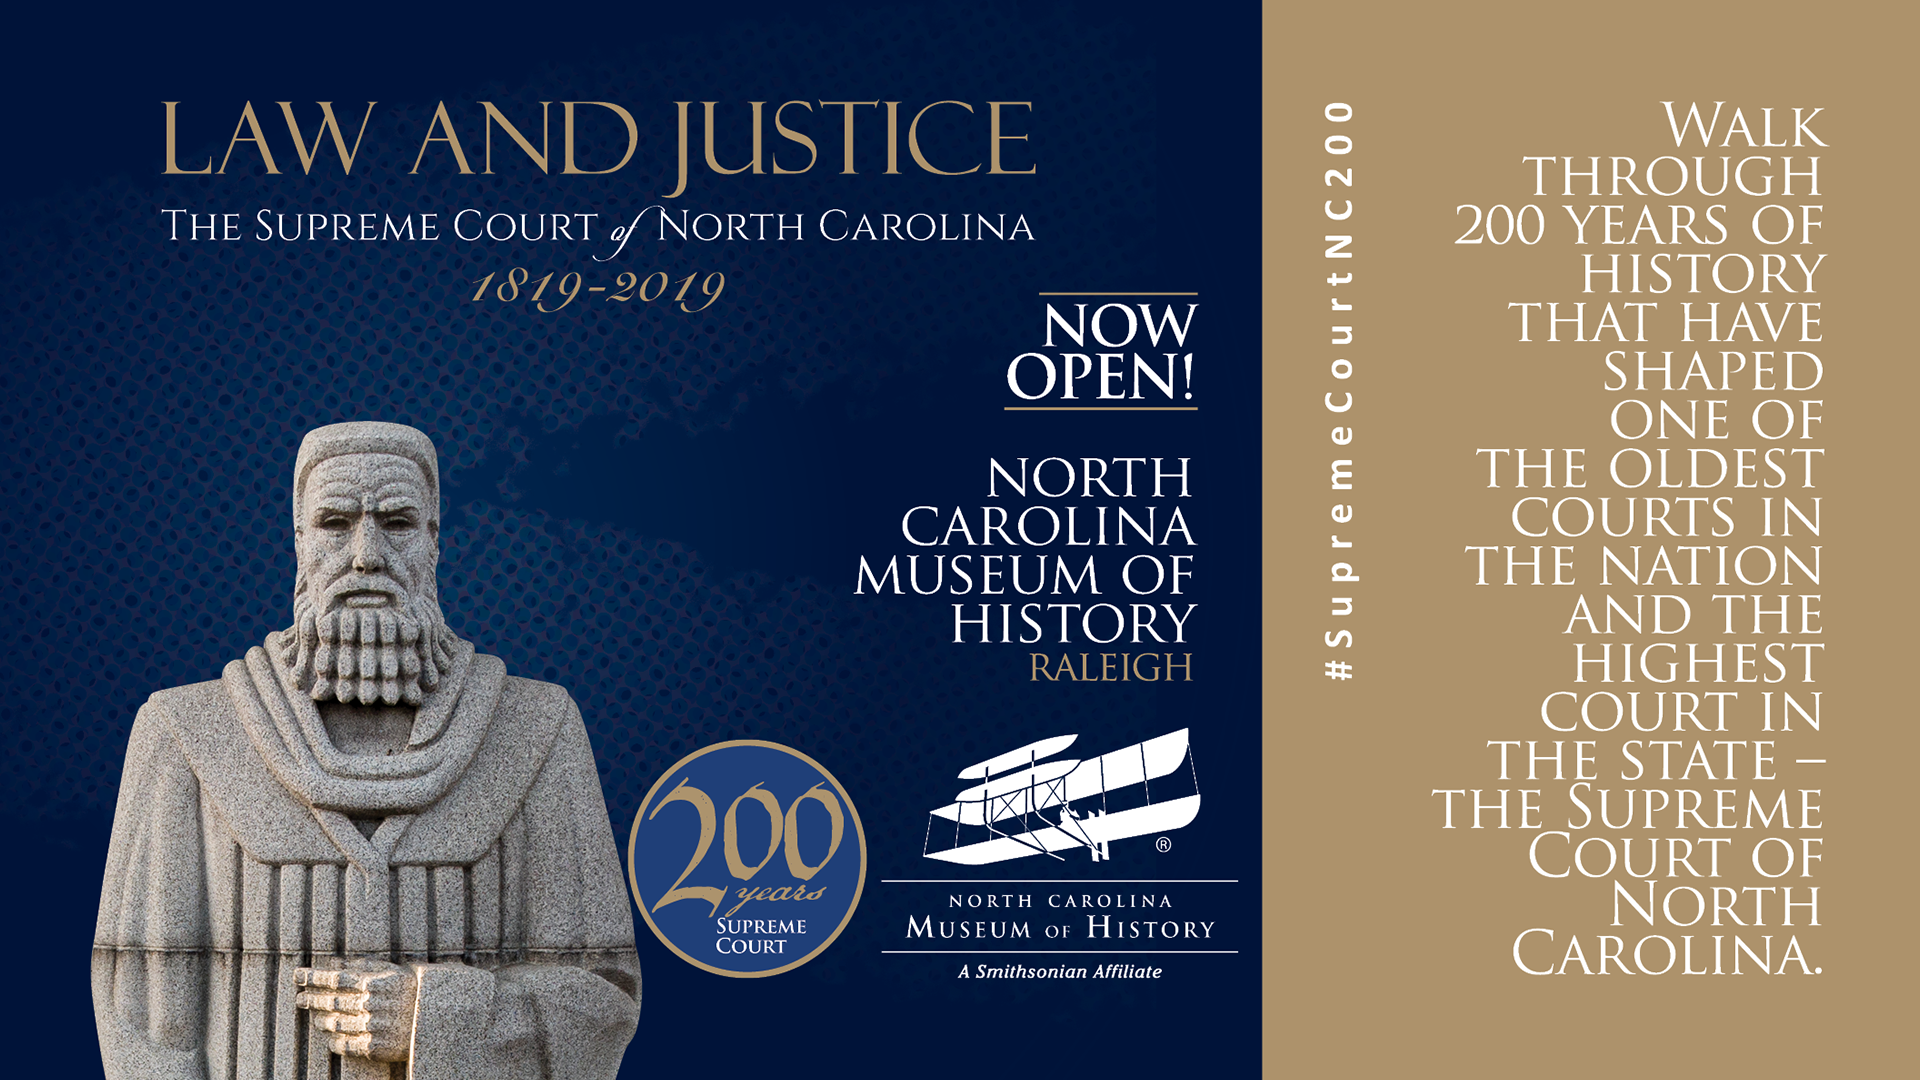 Supreme Court Exhibit at N.C. Museum of History